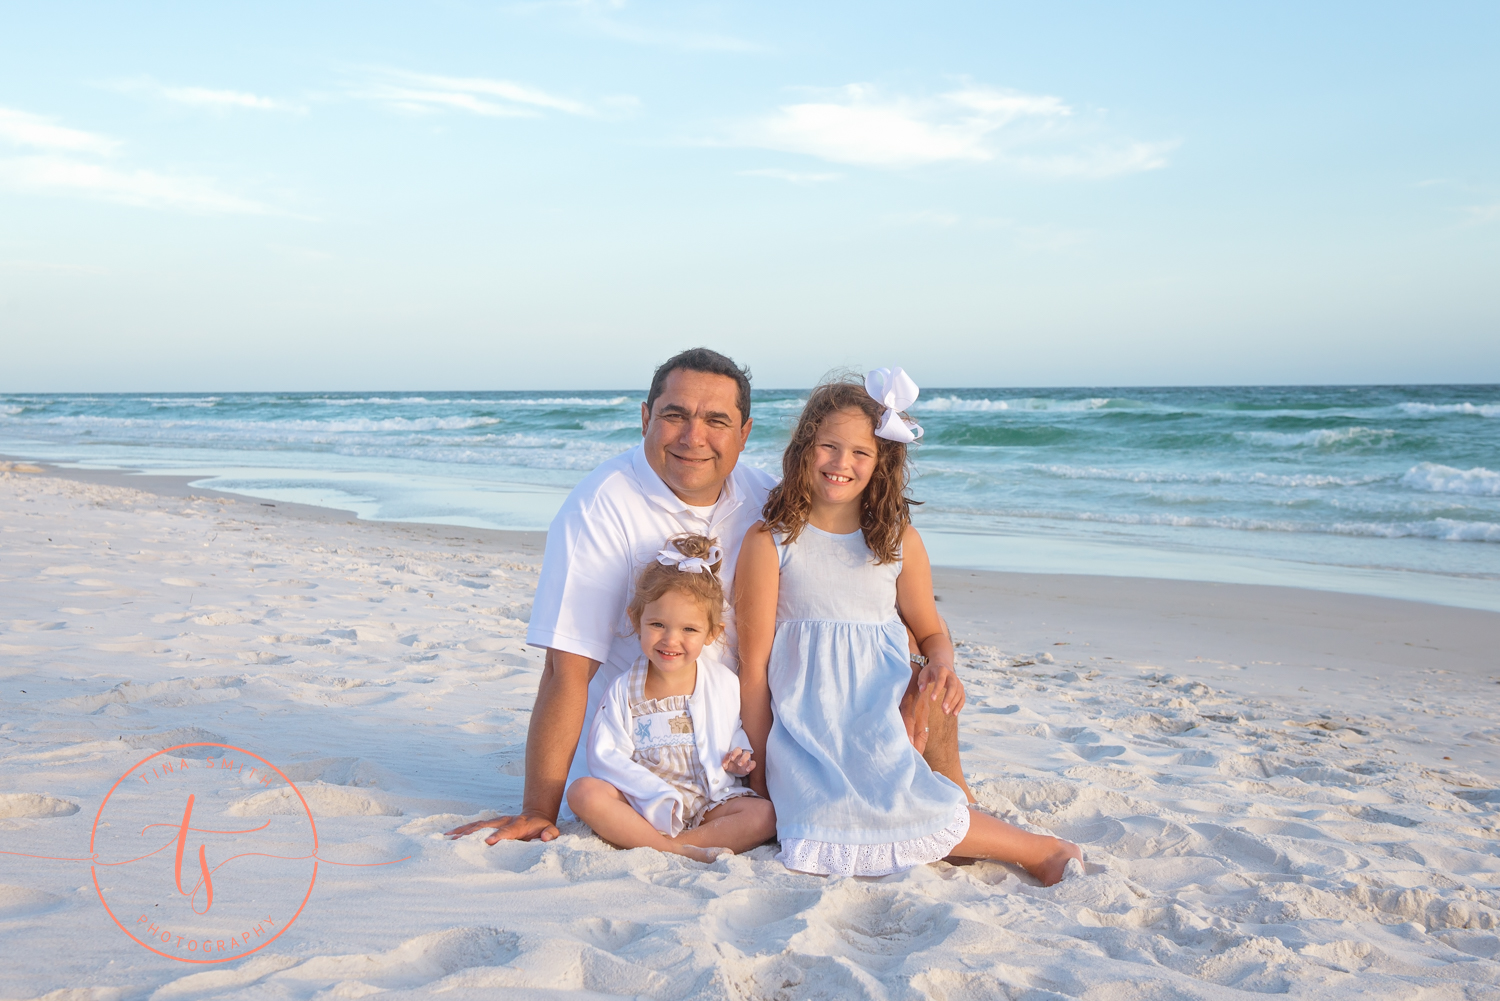 dad and daughters sitting on watersound beach smiling for photographer